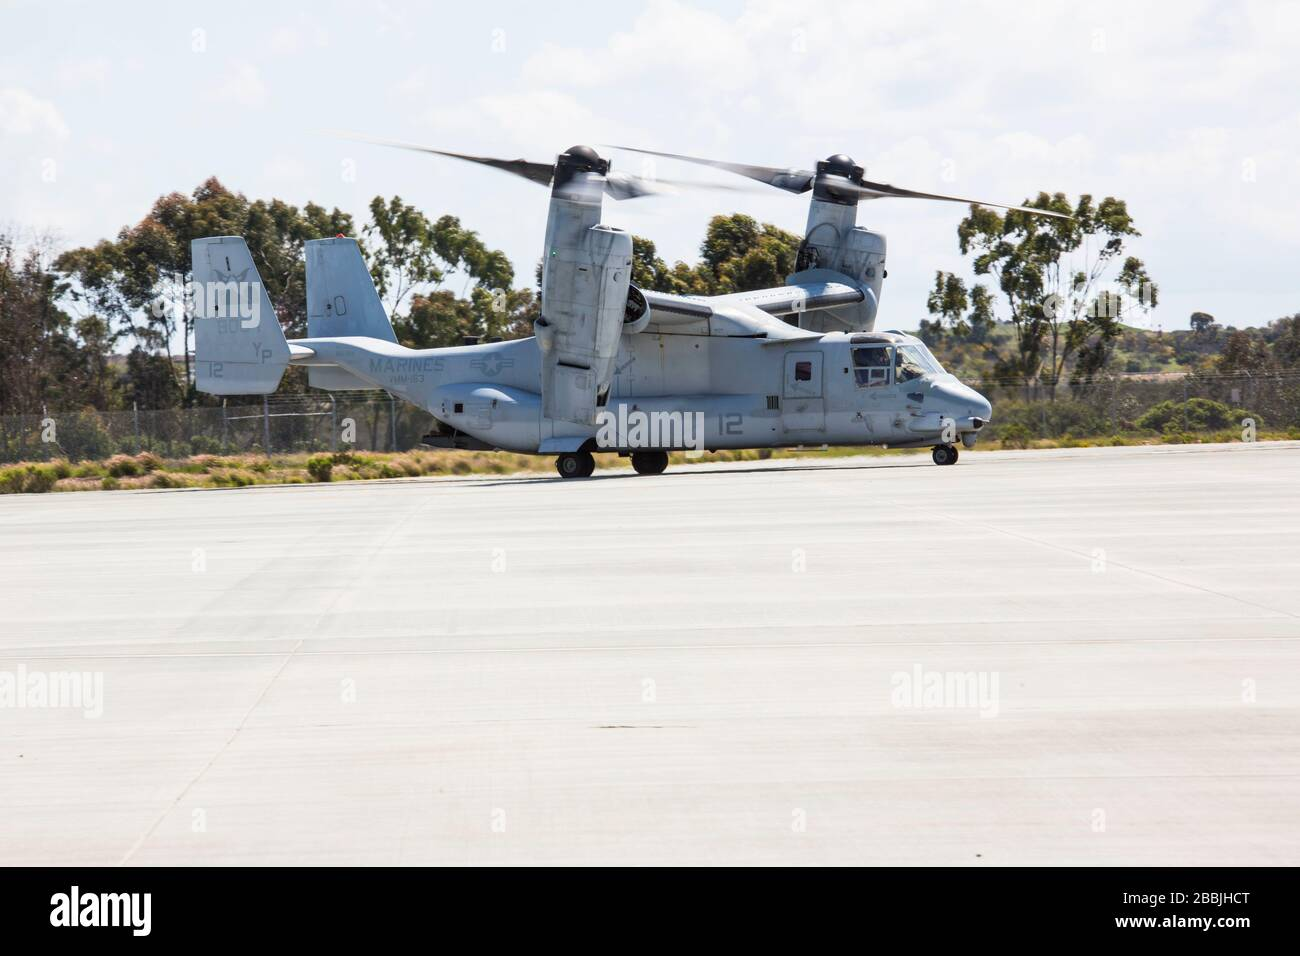 A U.S. Marine Corps MV-22B Osprey assigned to Marine Medium Tiltrotor Squadron 163, Marine Aircraft Group 16, 3rd Marine Aircraft Wing, takes off at Marine Corps Air Station Miramar, Calif., March 26, 2020. 3rd MAW continues its daily operations and mission essential tasks while enforcing precautionary measures to mitigate the spread of COVID-19. (U.S. Marine Corps photo by Lance Cpl. Julian Elliott-Drouin) Stock Photo